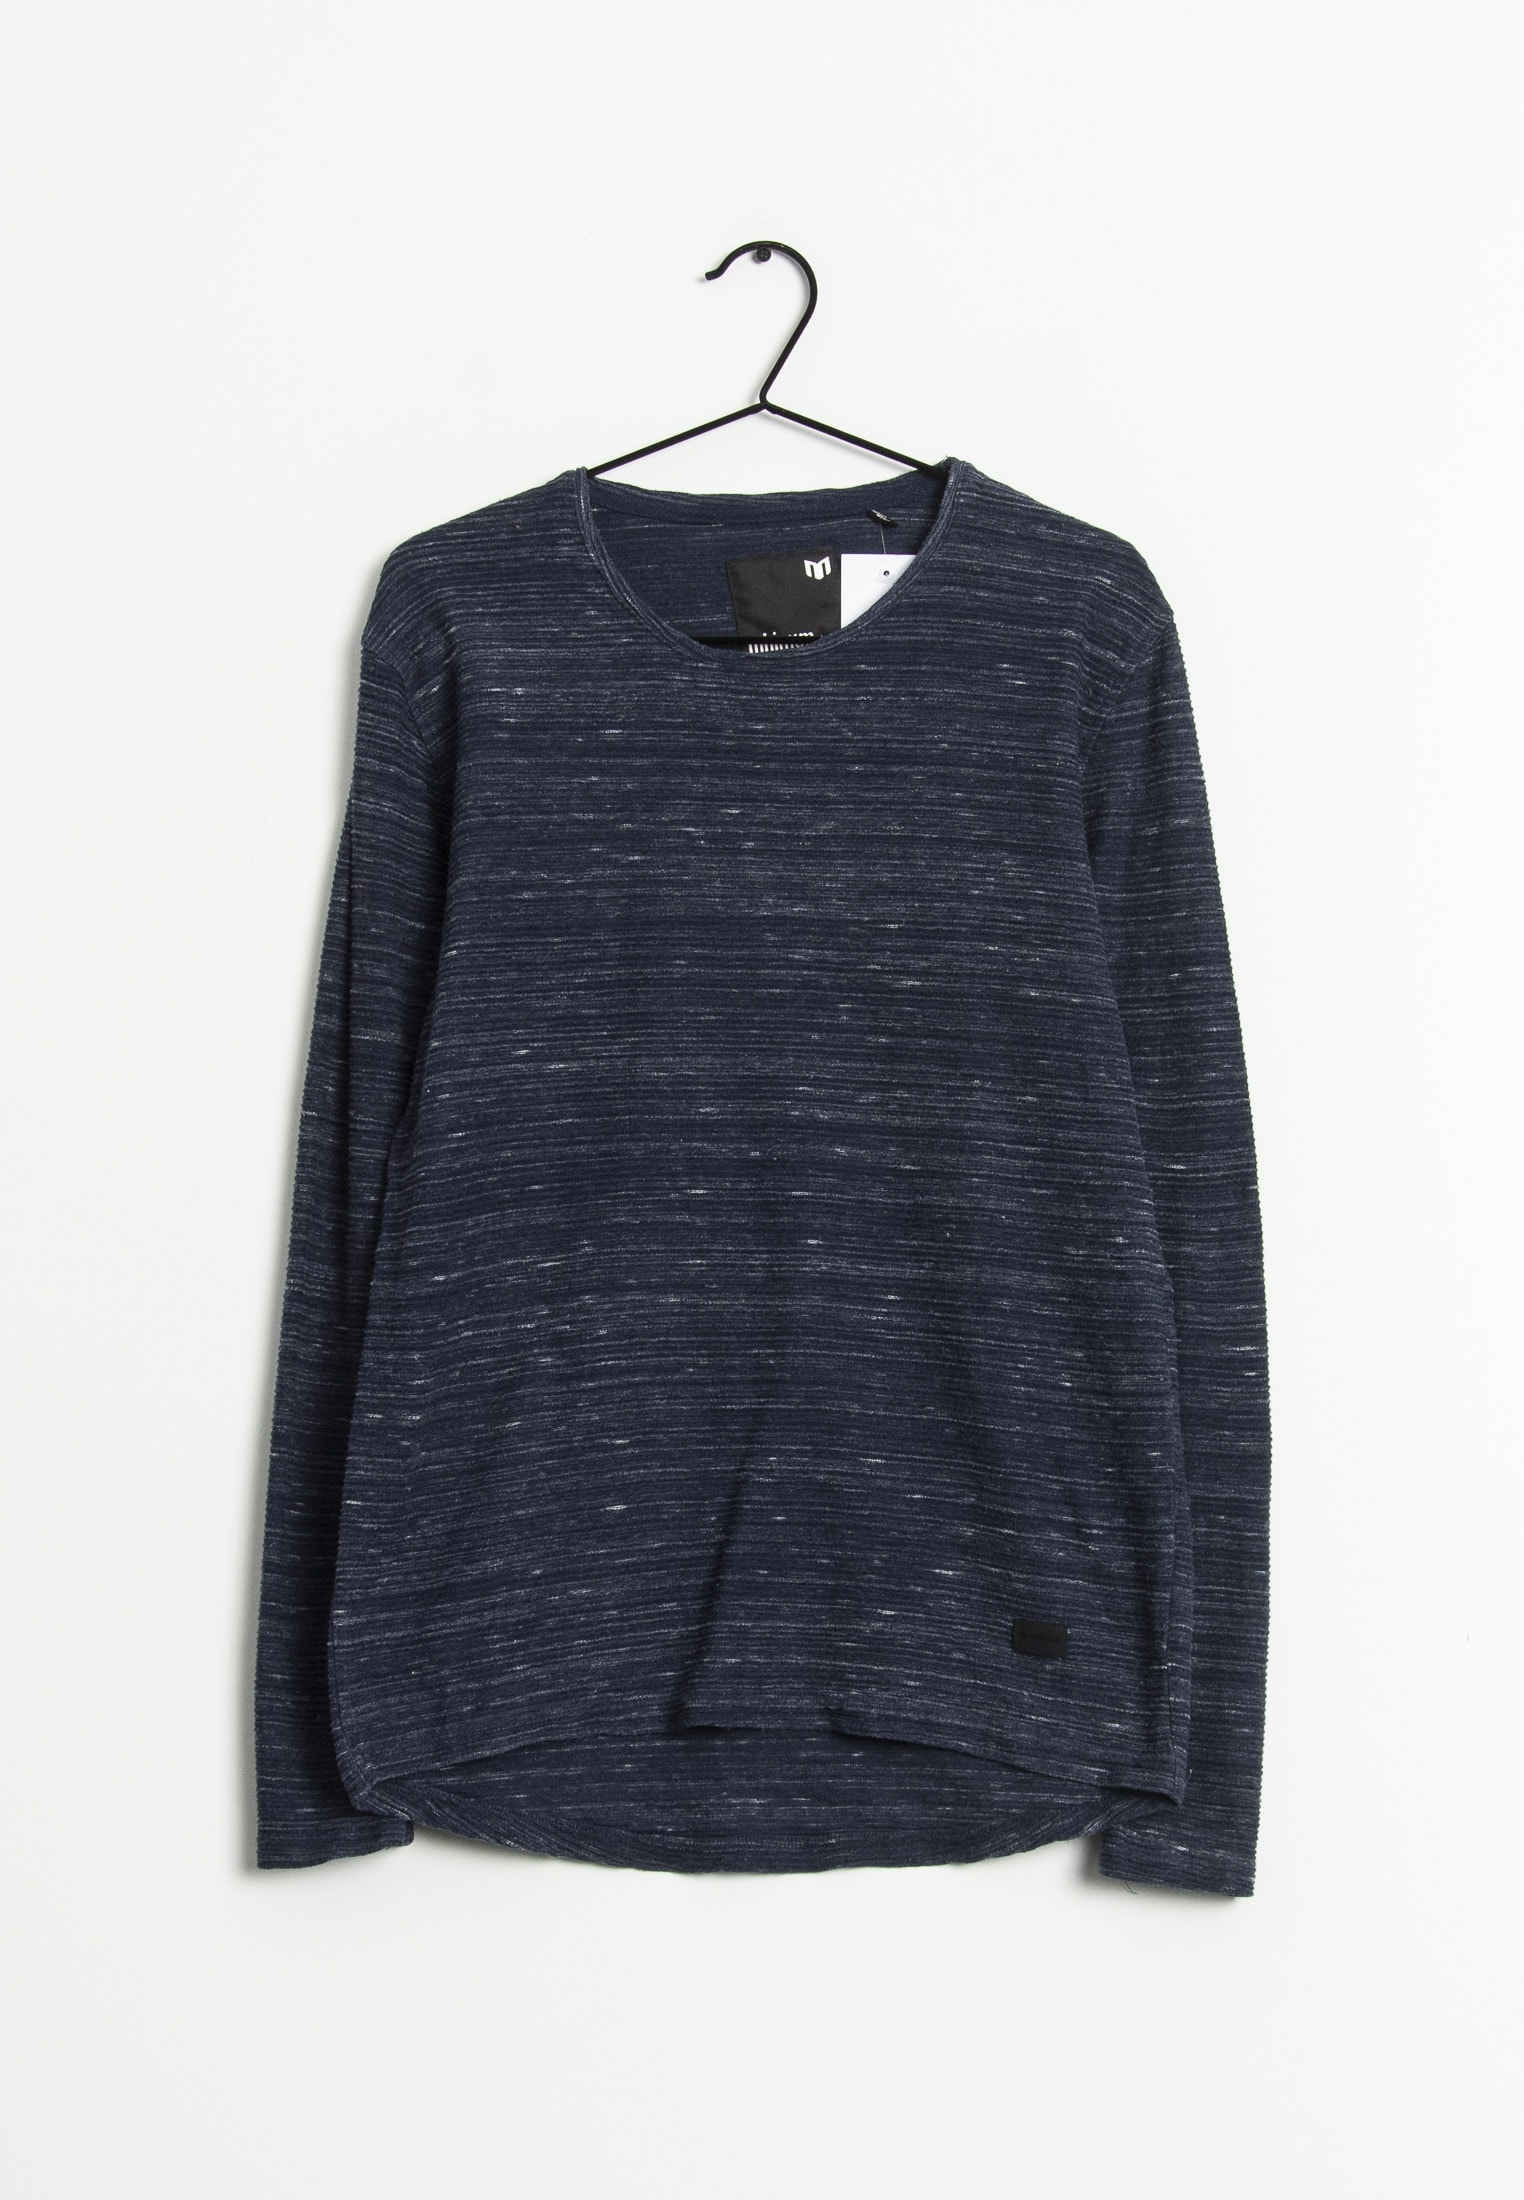 Minimum Sweat / Fleece Blau Gr.M